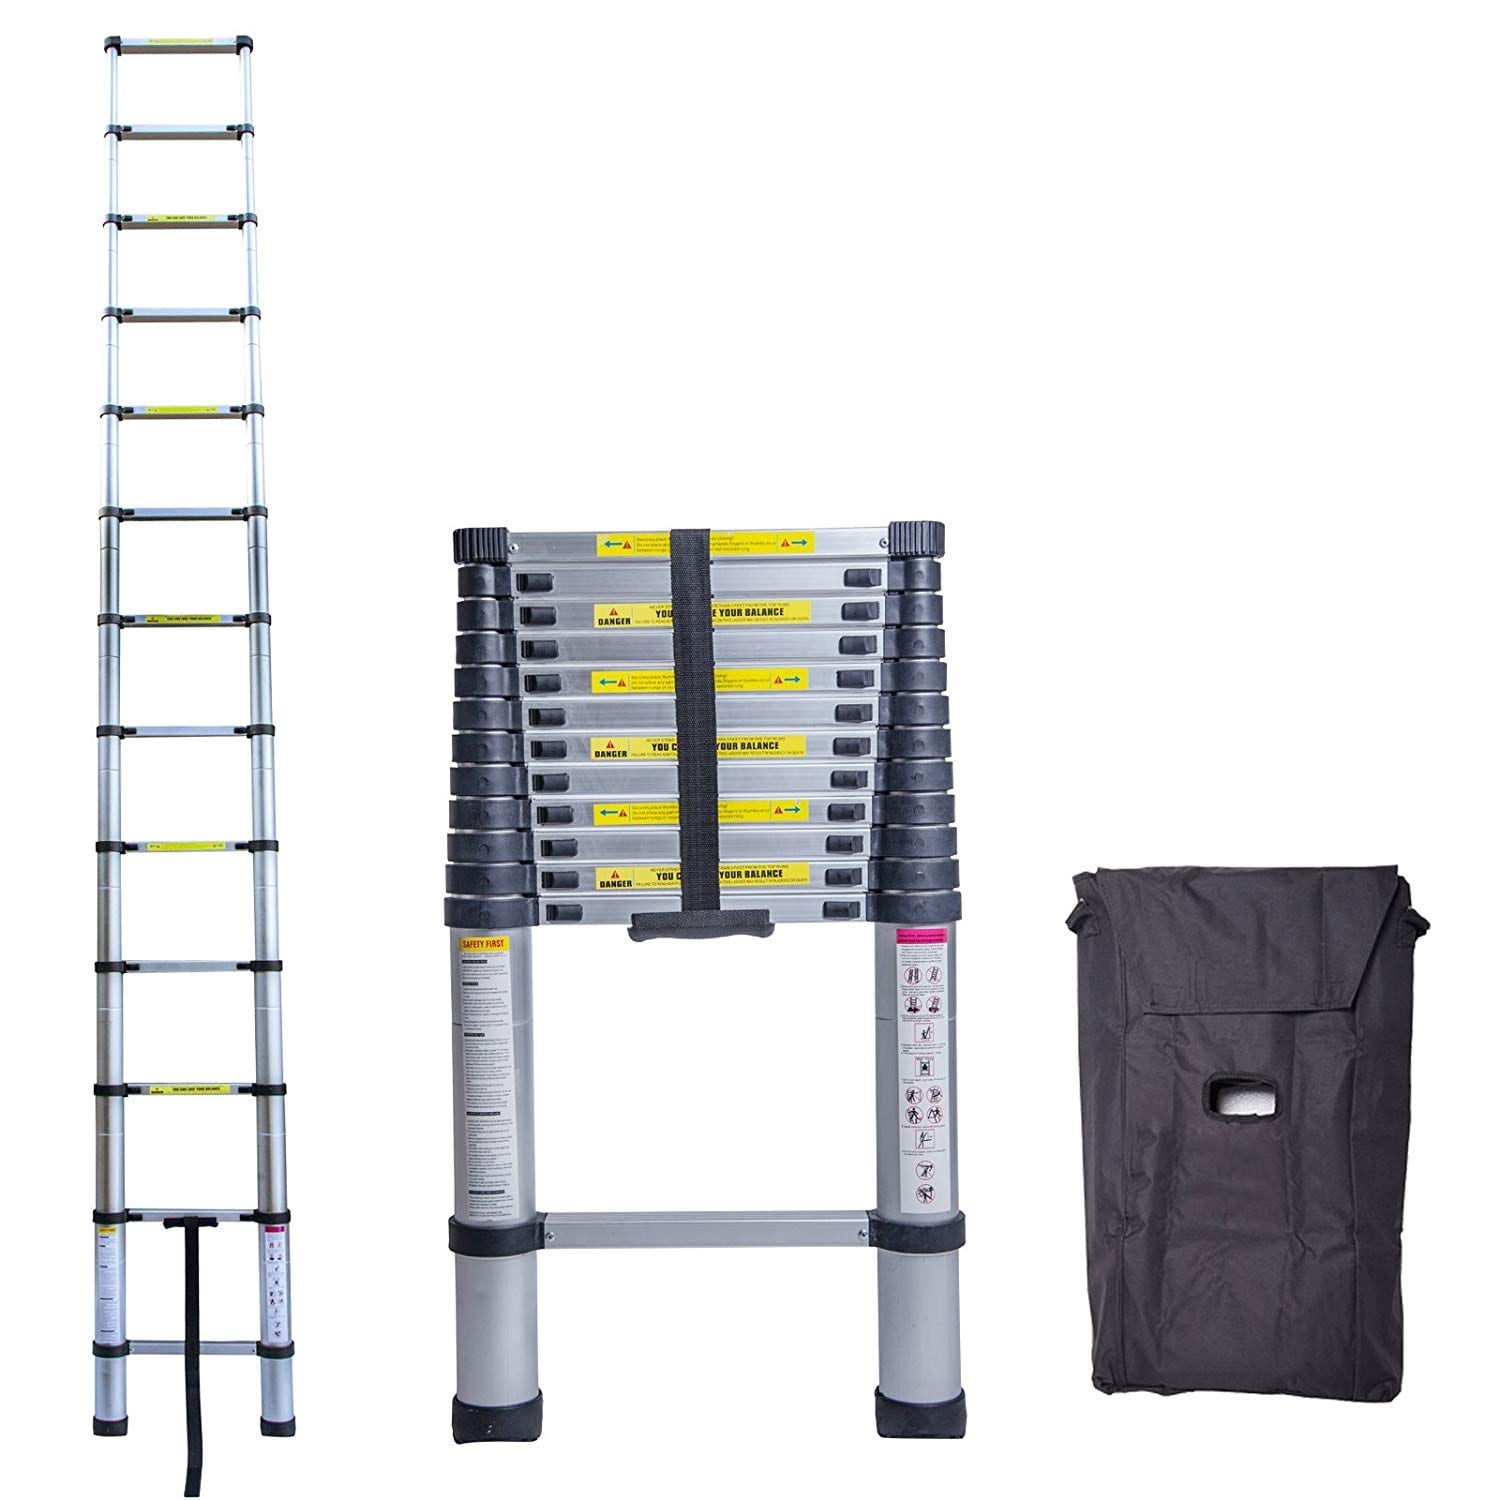 Idealchoiceproduct 12.5FT Ladder Extension Steps